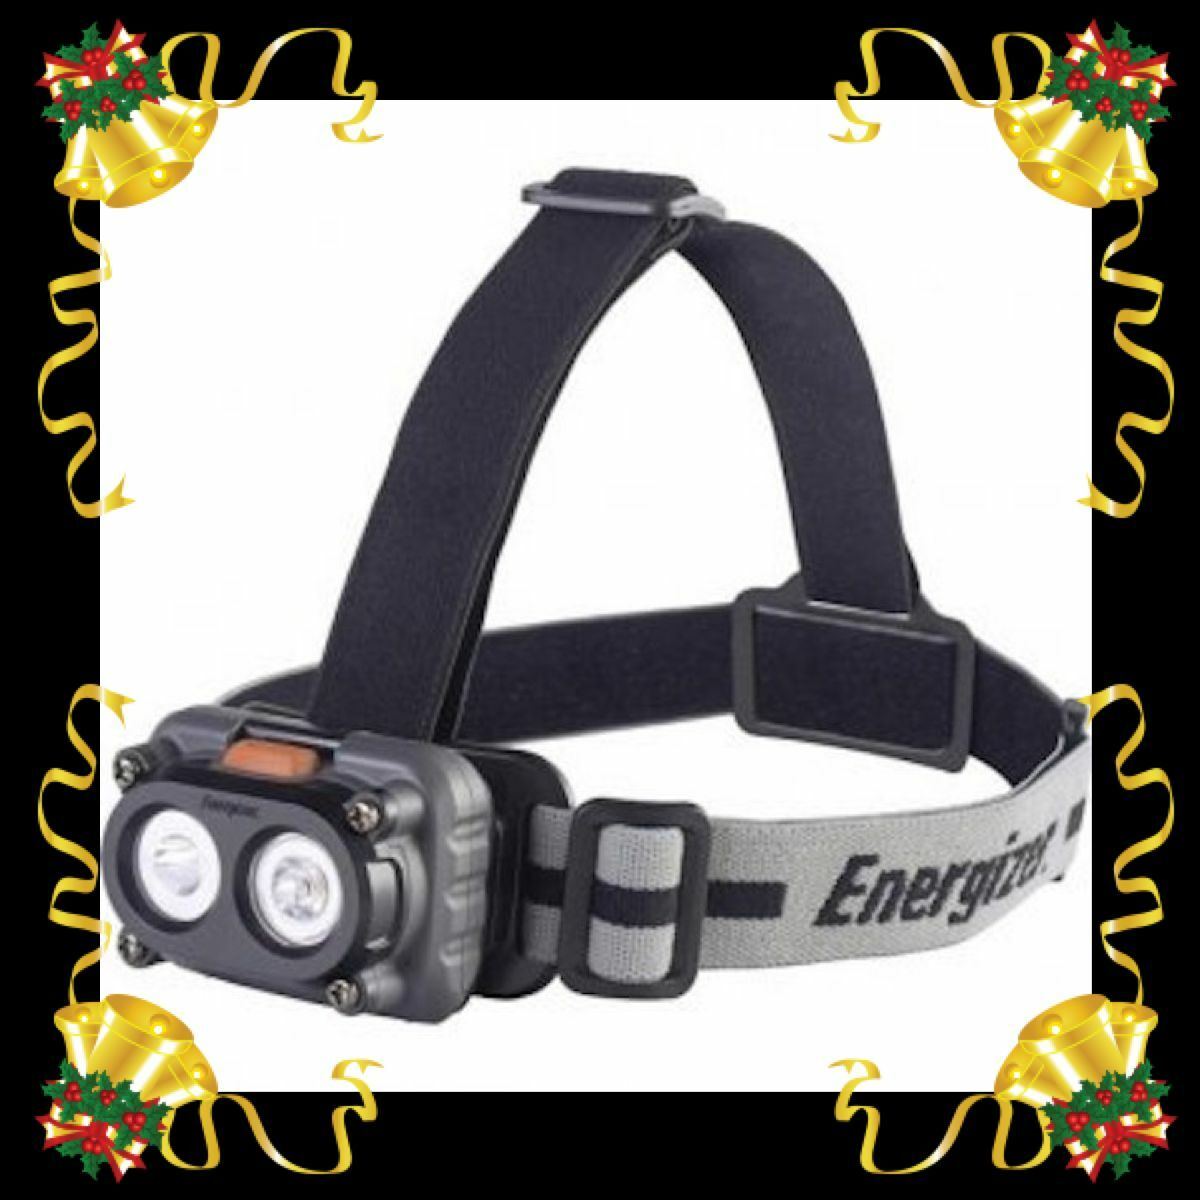 Gift IdeaEnergizer Vision HD & LED Headlight, Headlamp Free Post